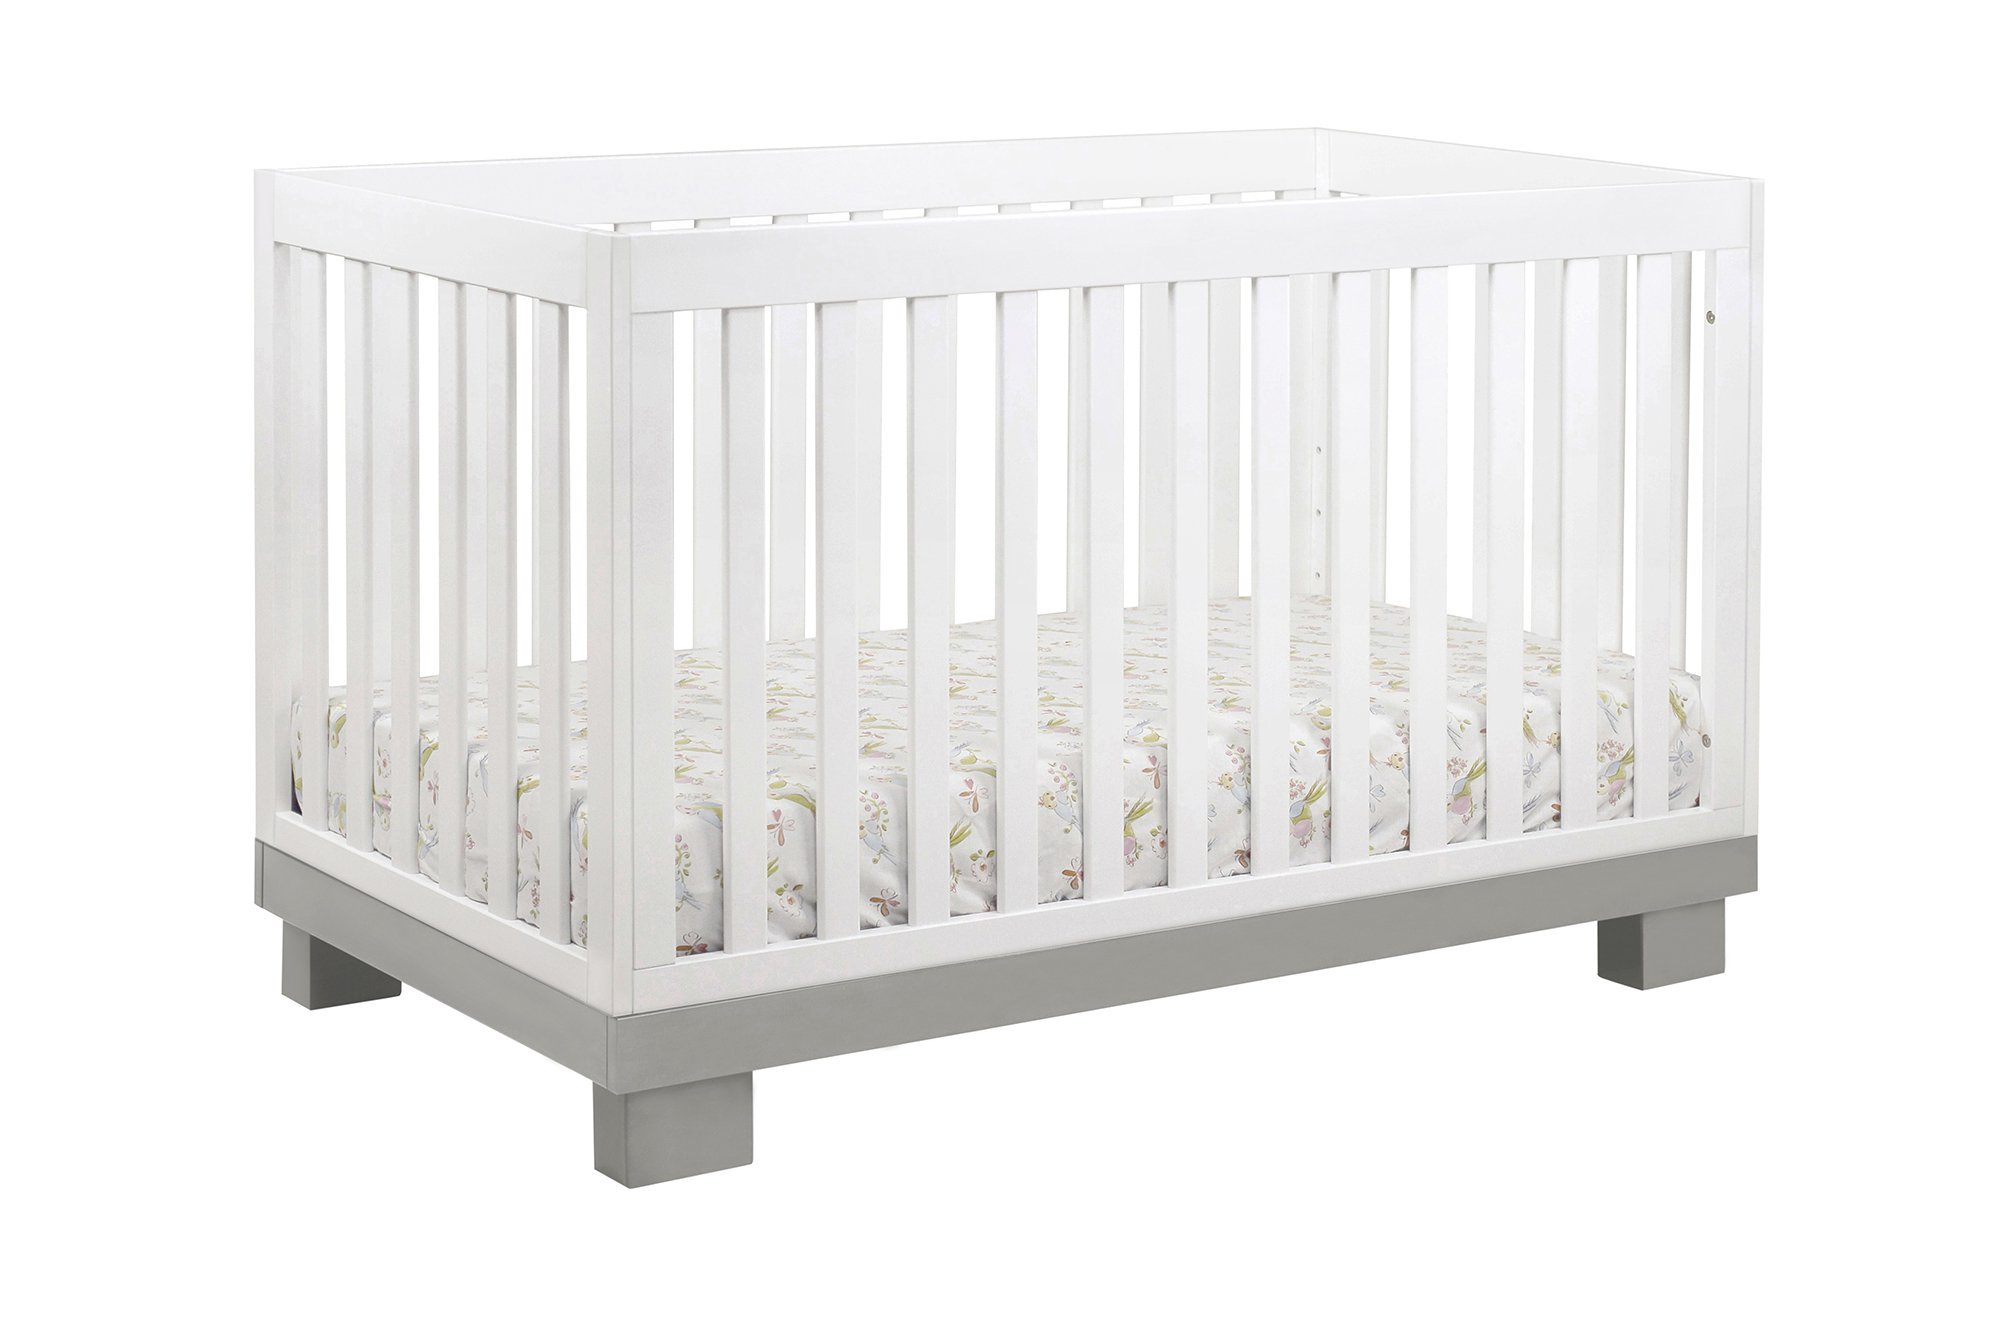 Babyletto Modo 3-in-1 Convertible Crib with Toddler Bed Conversion Kit, Grey / White